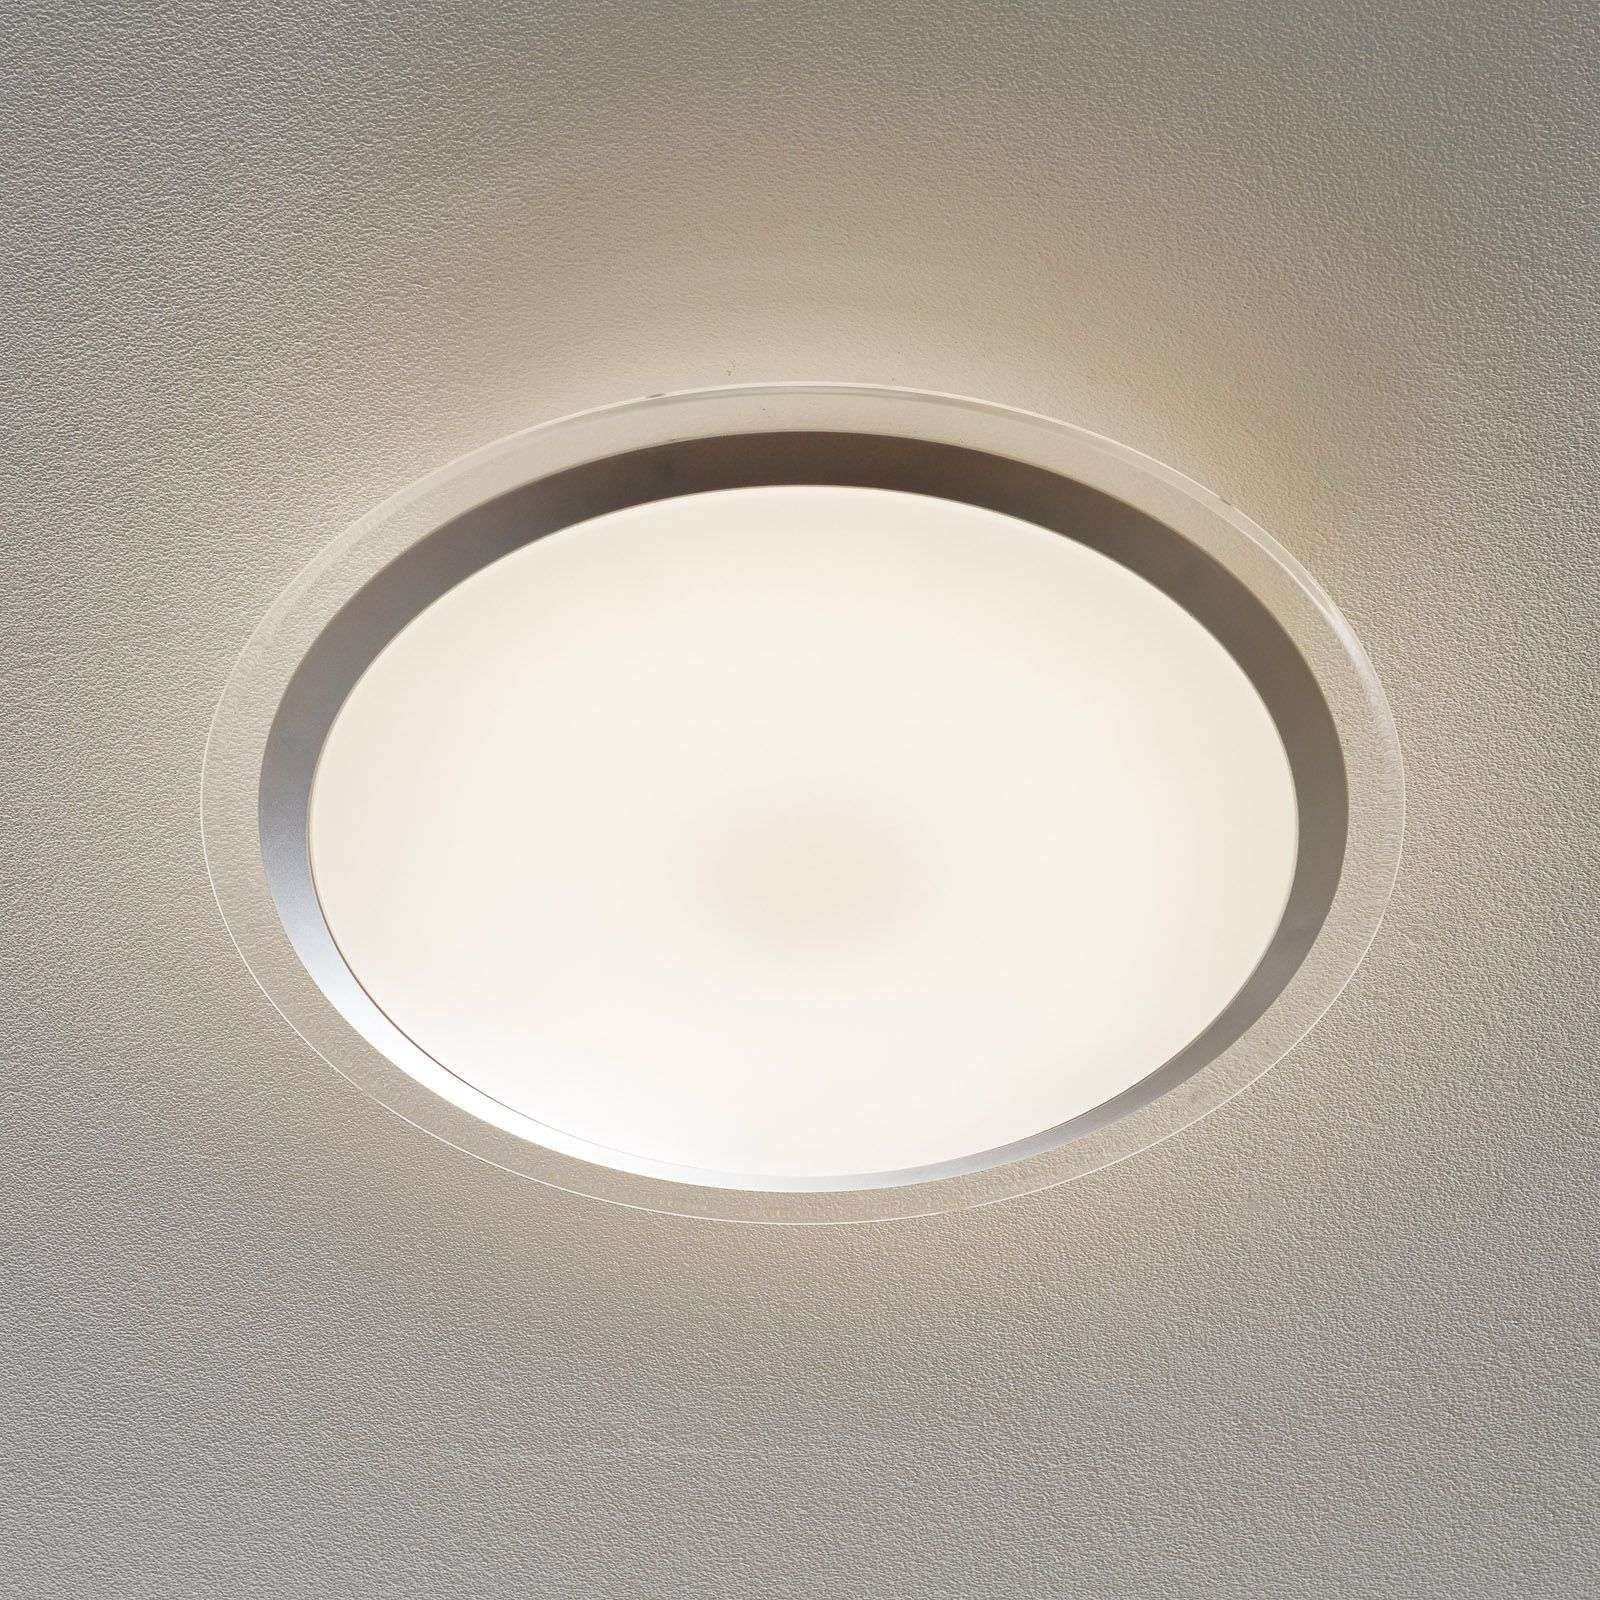 EGLO connect Competa-C LED plafondlamp